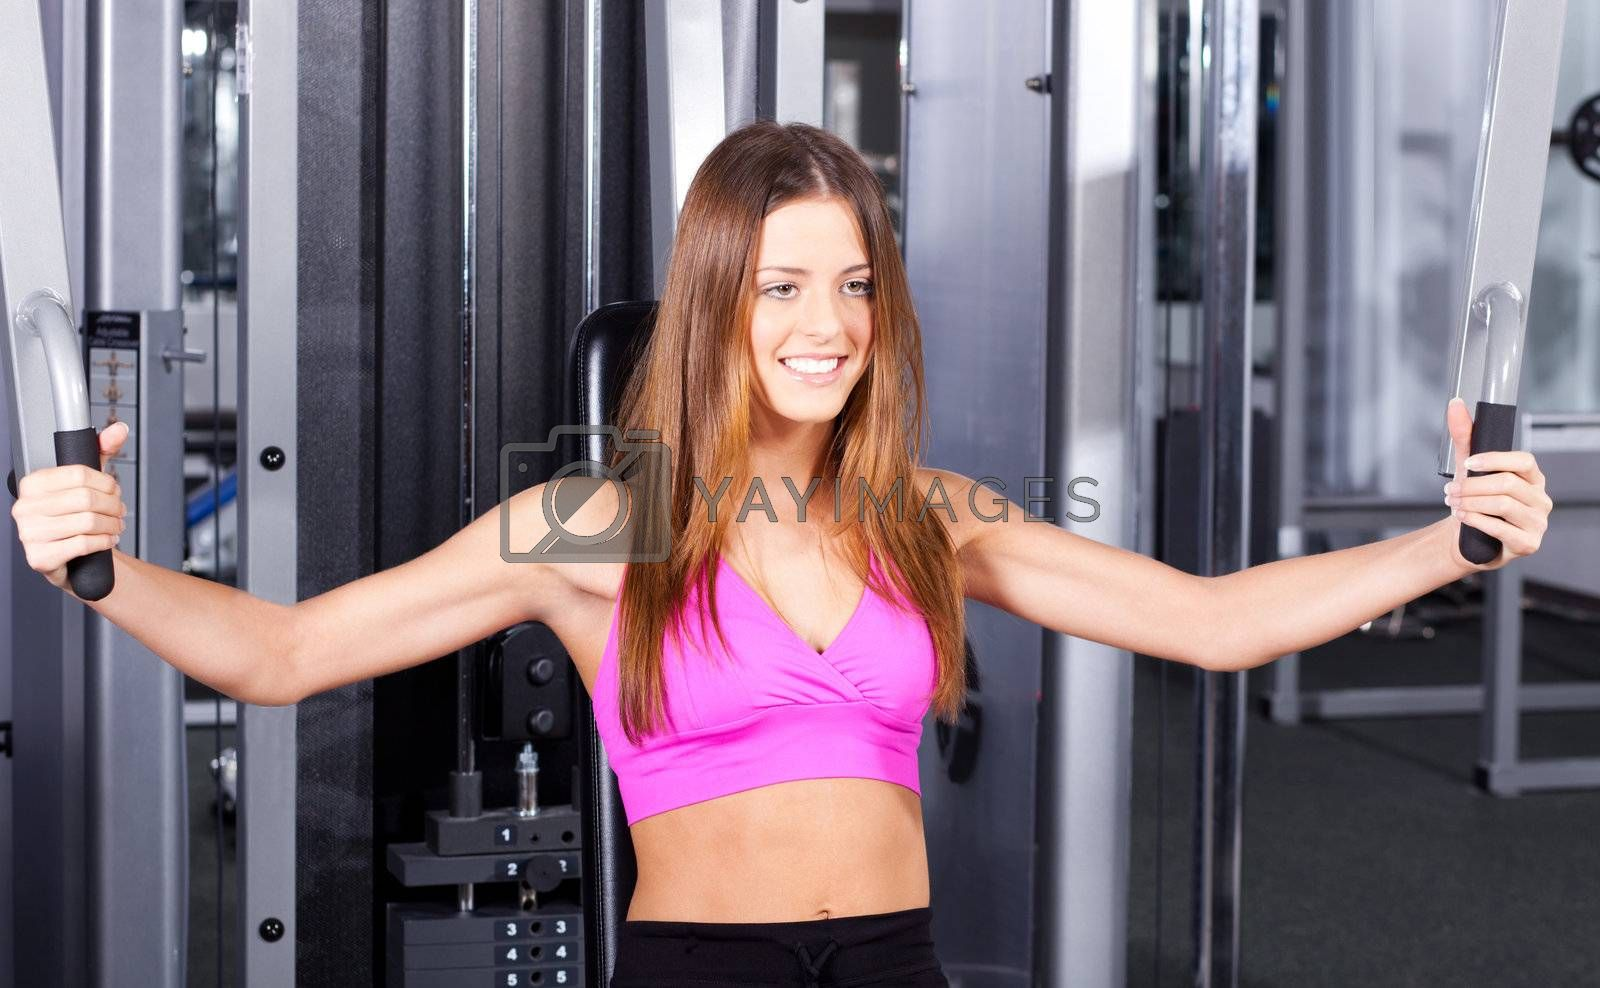 Health club: Fit girl in a gym exercising...